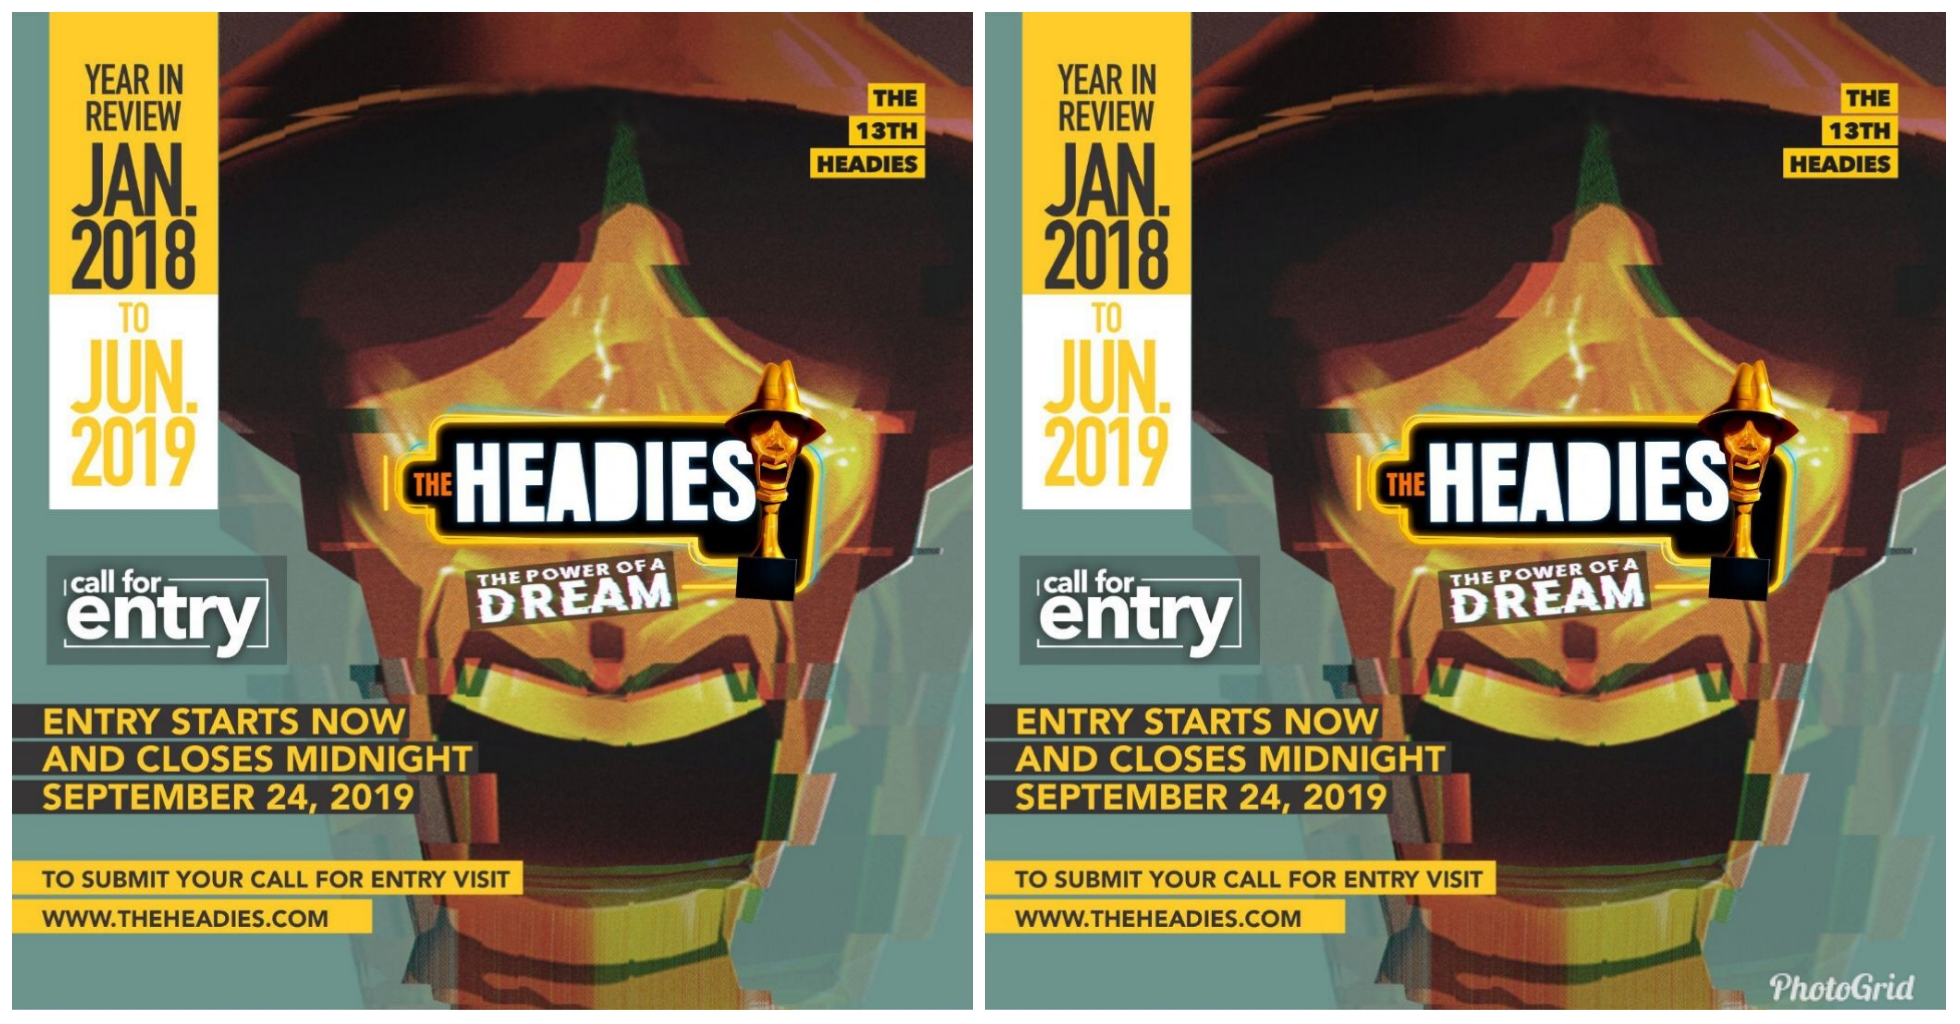 THE 13th HEADIES AWARD - How to Submit entries for nimmination